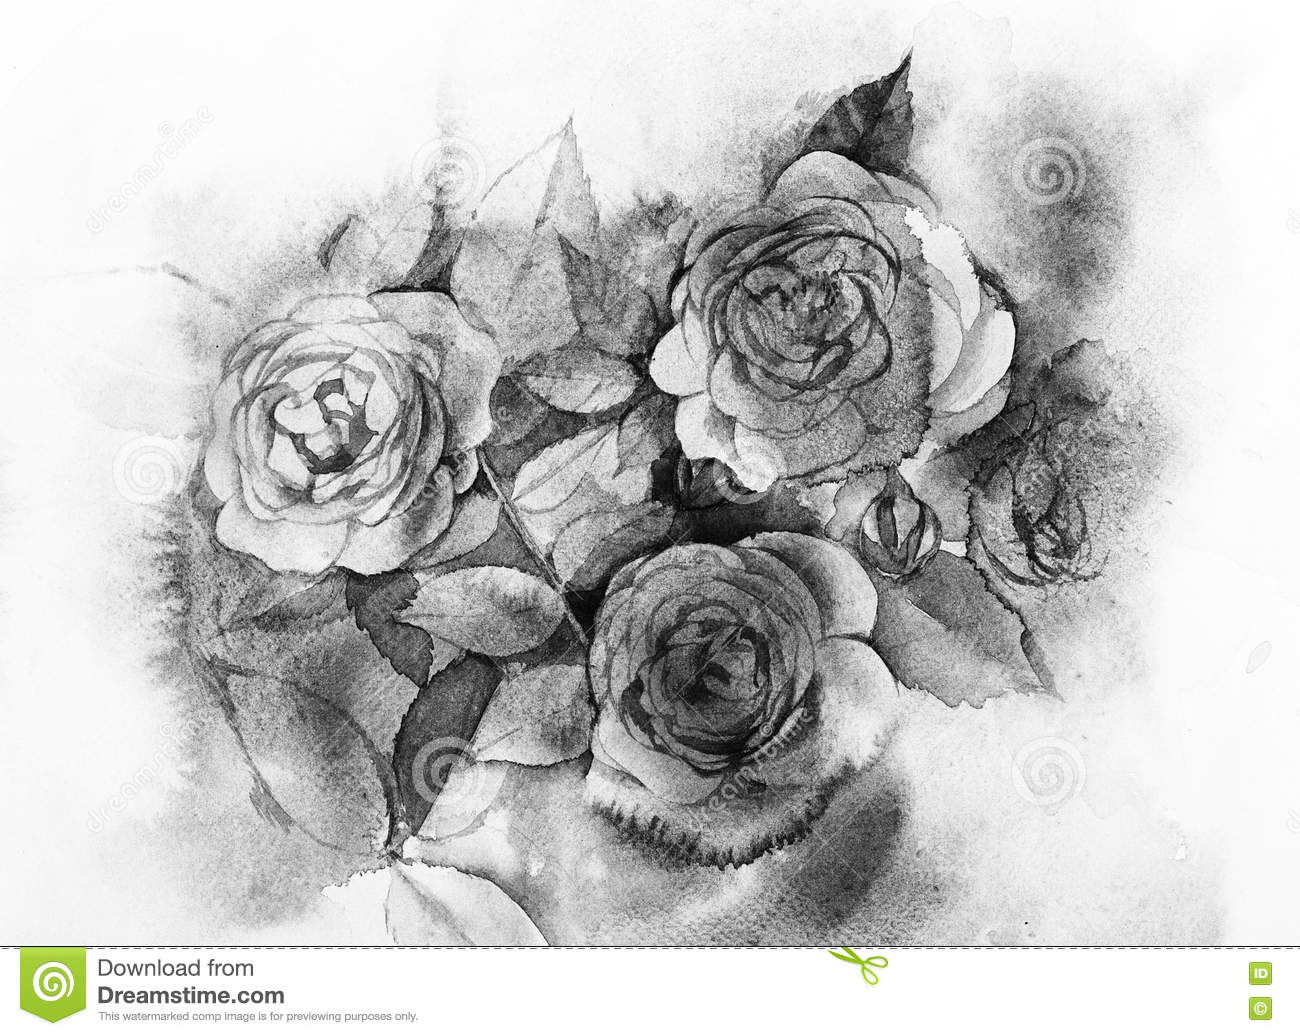 Black and white roses watercolor painting stock illustration download black and white roses watercolor painting stock illustration illustration of spring vintage mightylinksfo